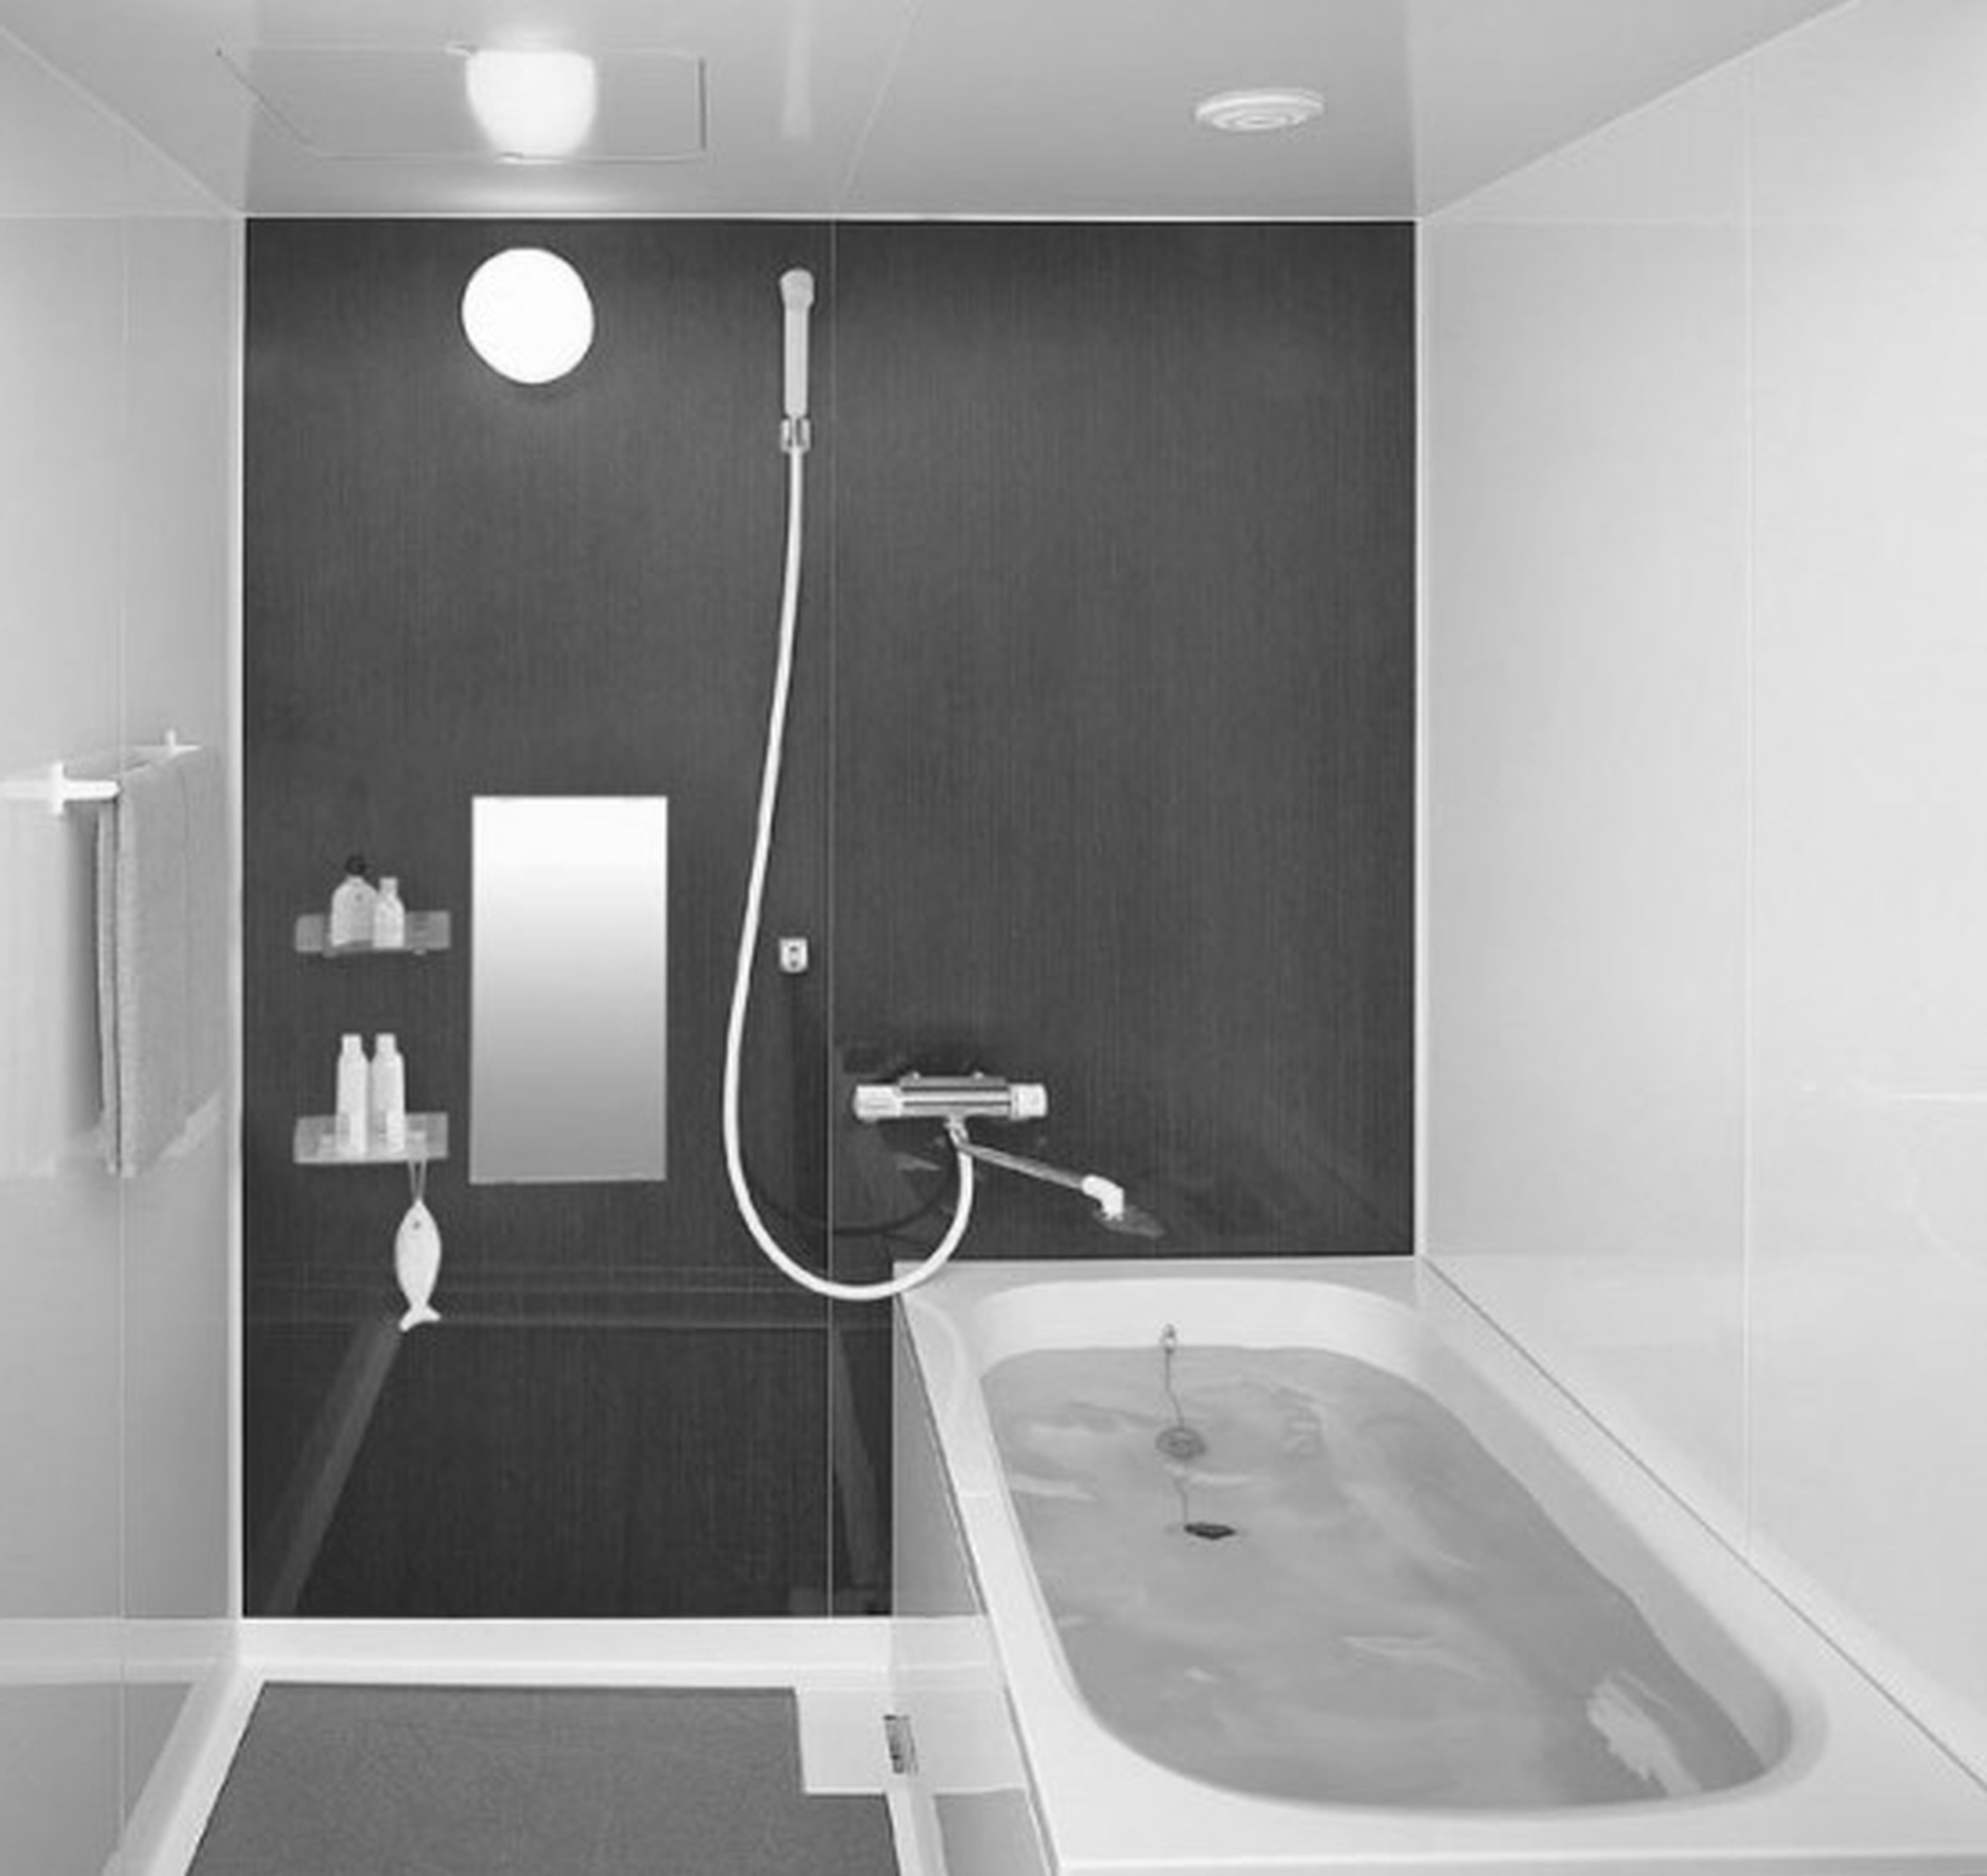 flooring ideas for small bathrooms%0A Explore Small Bathroom Remodeling and more